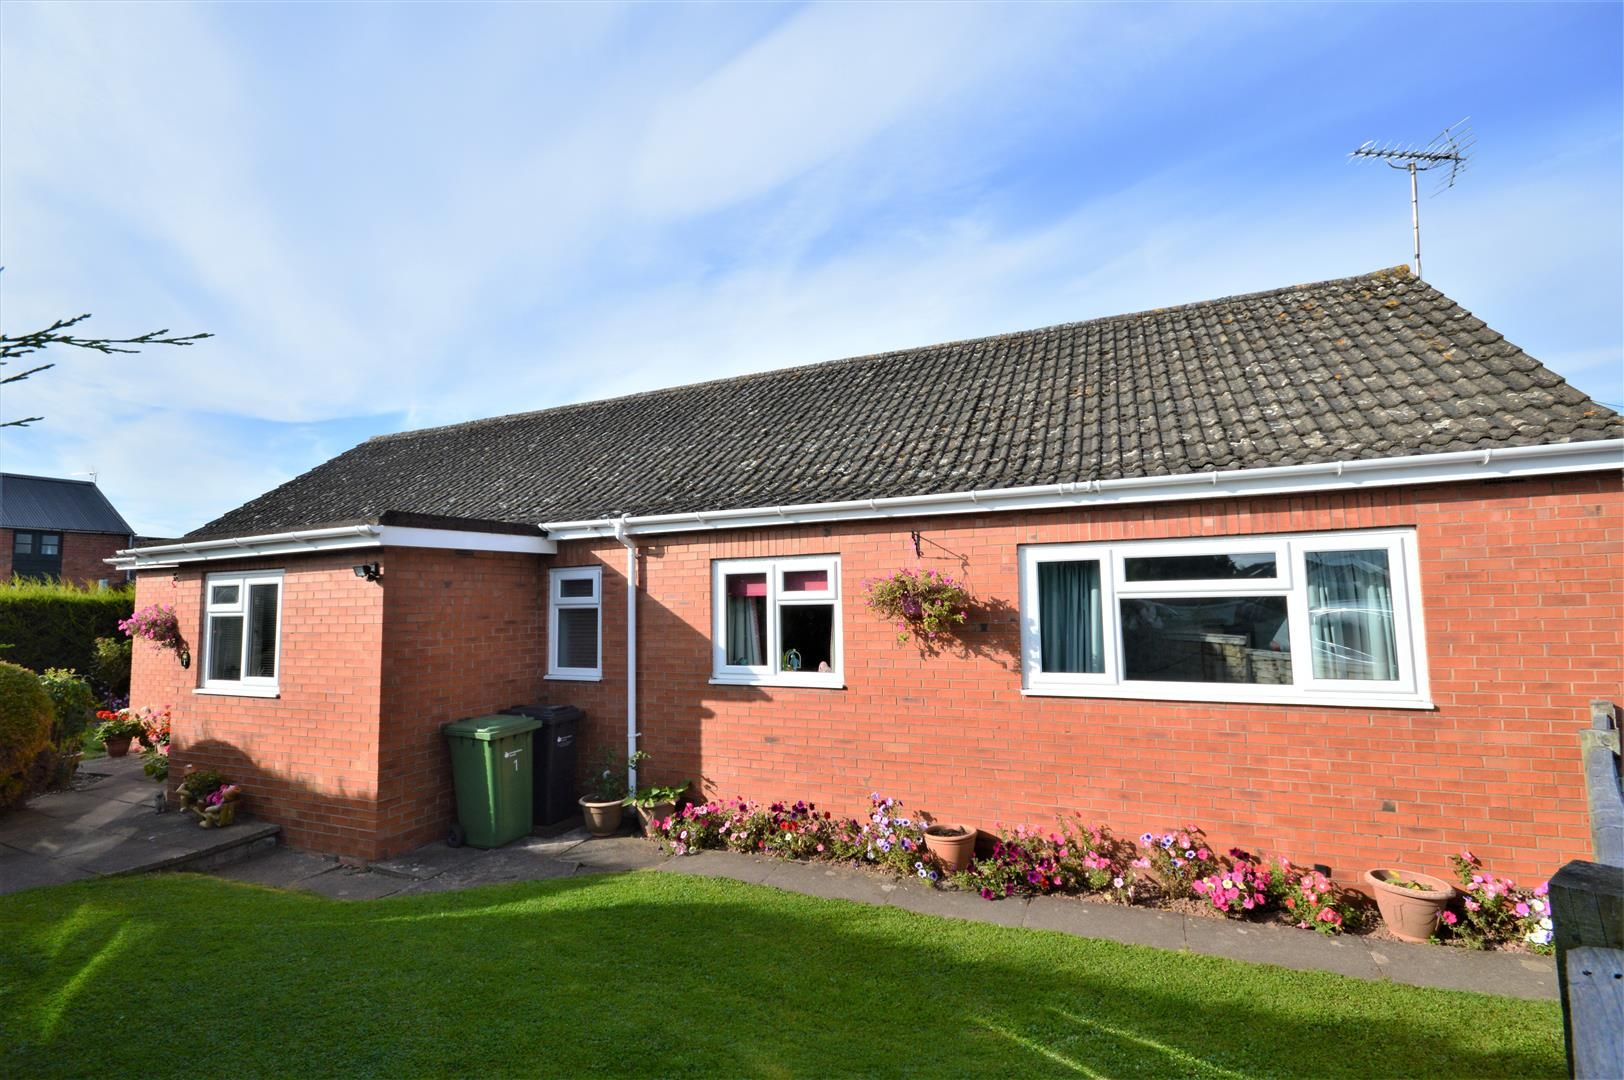 4 bed detached-bungalow for sale in Marden 15